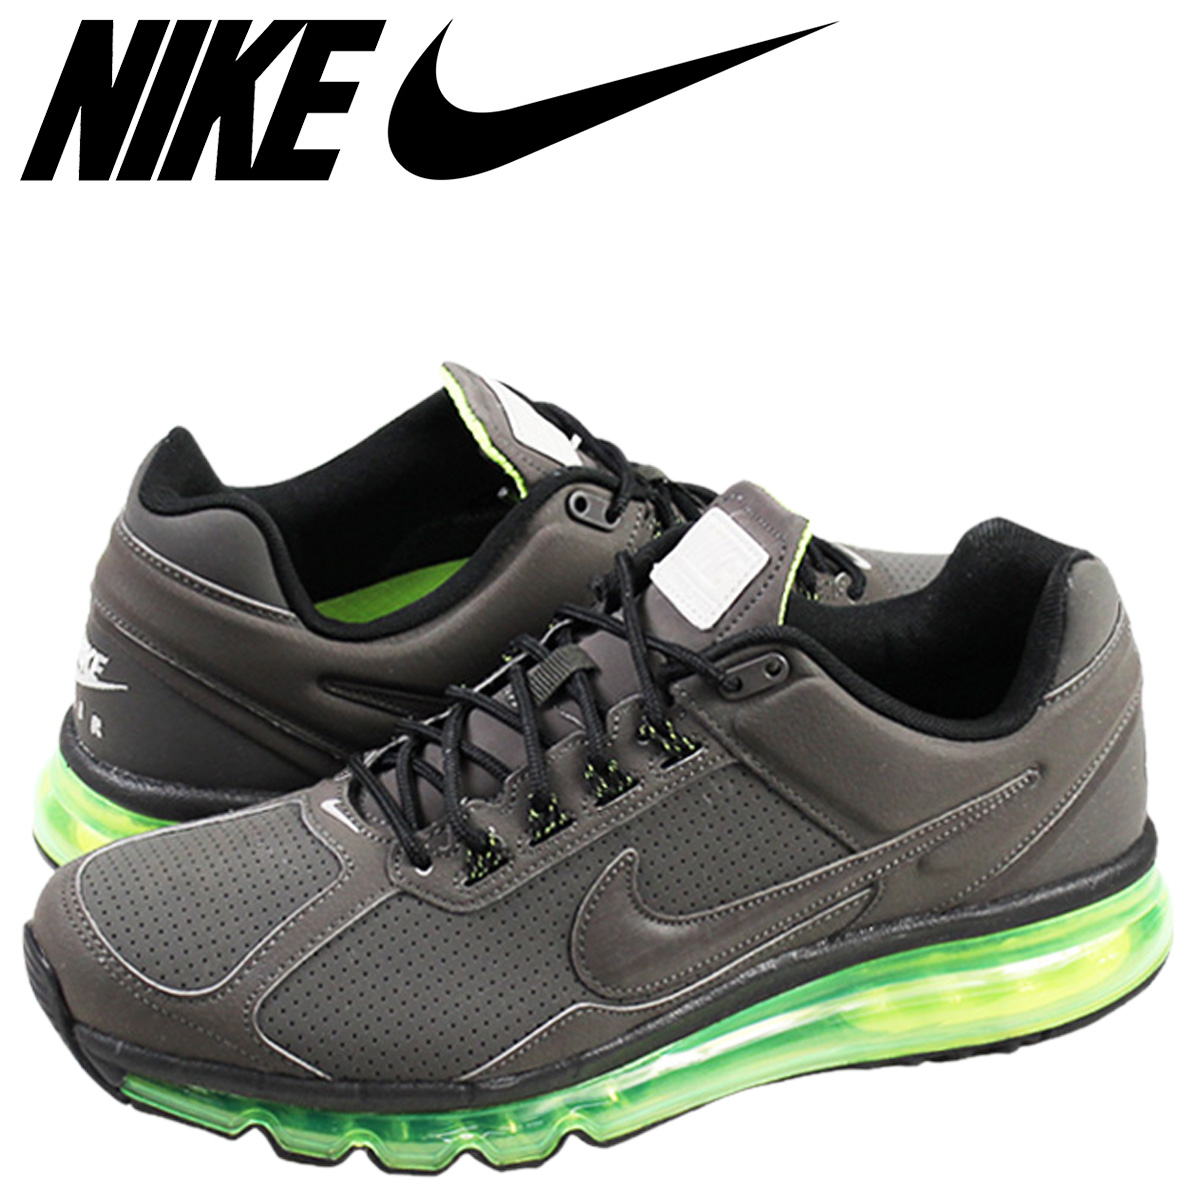 NIKE Kie Ney AMAX sneakers AIR MAX 2013 LEATHER Air Max 2013 599,455 007 men's shoes gray